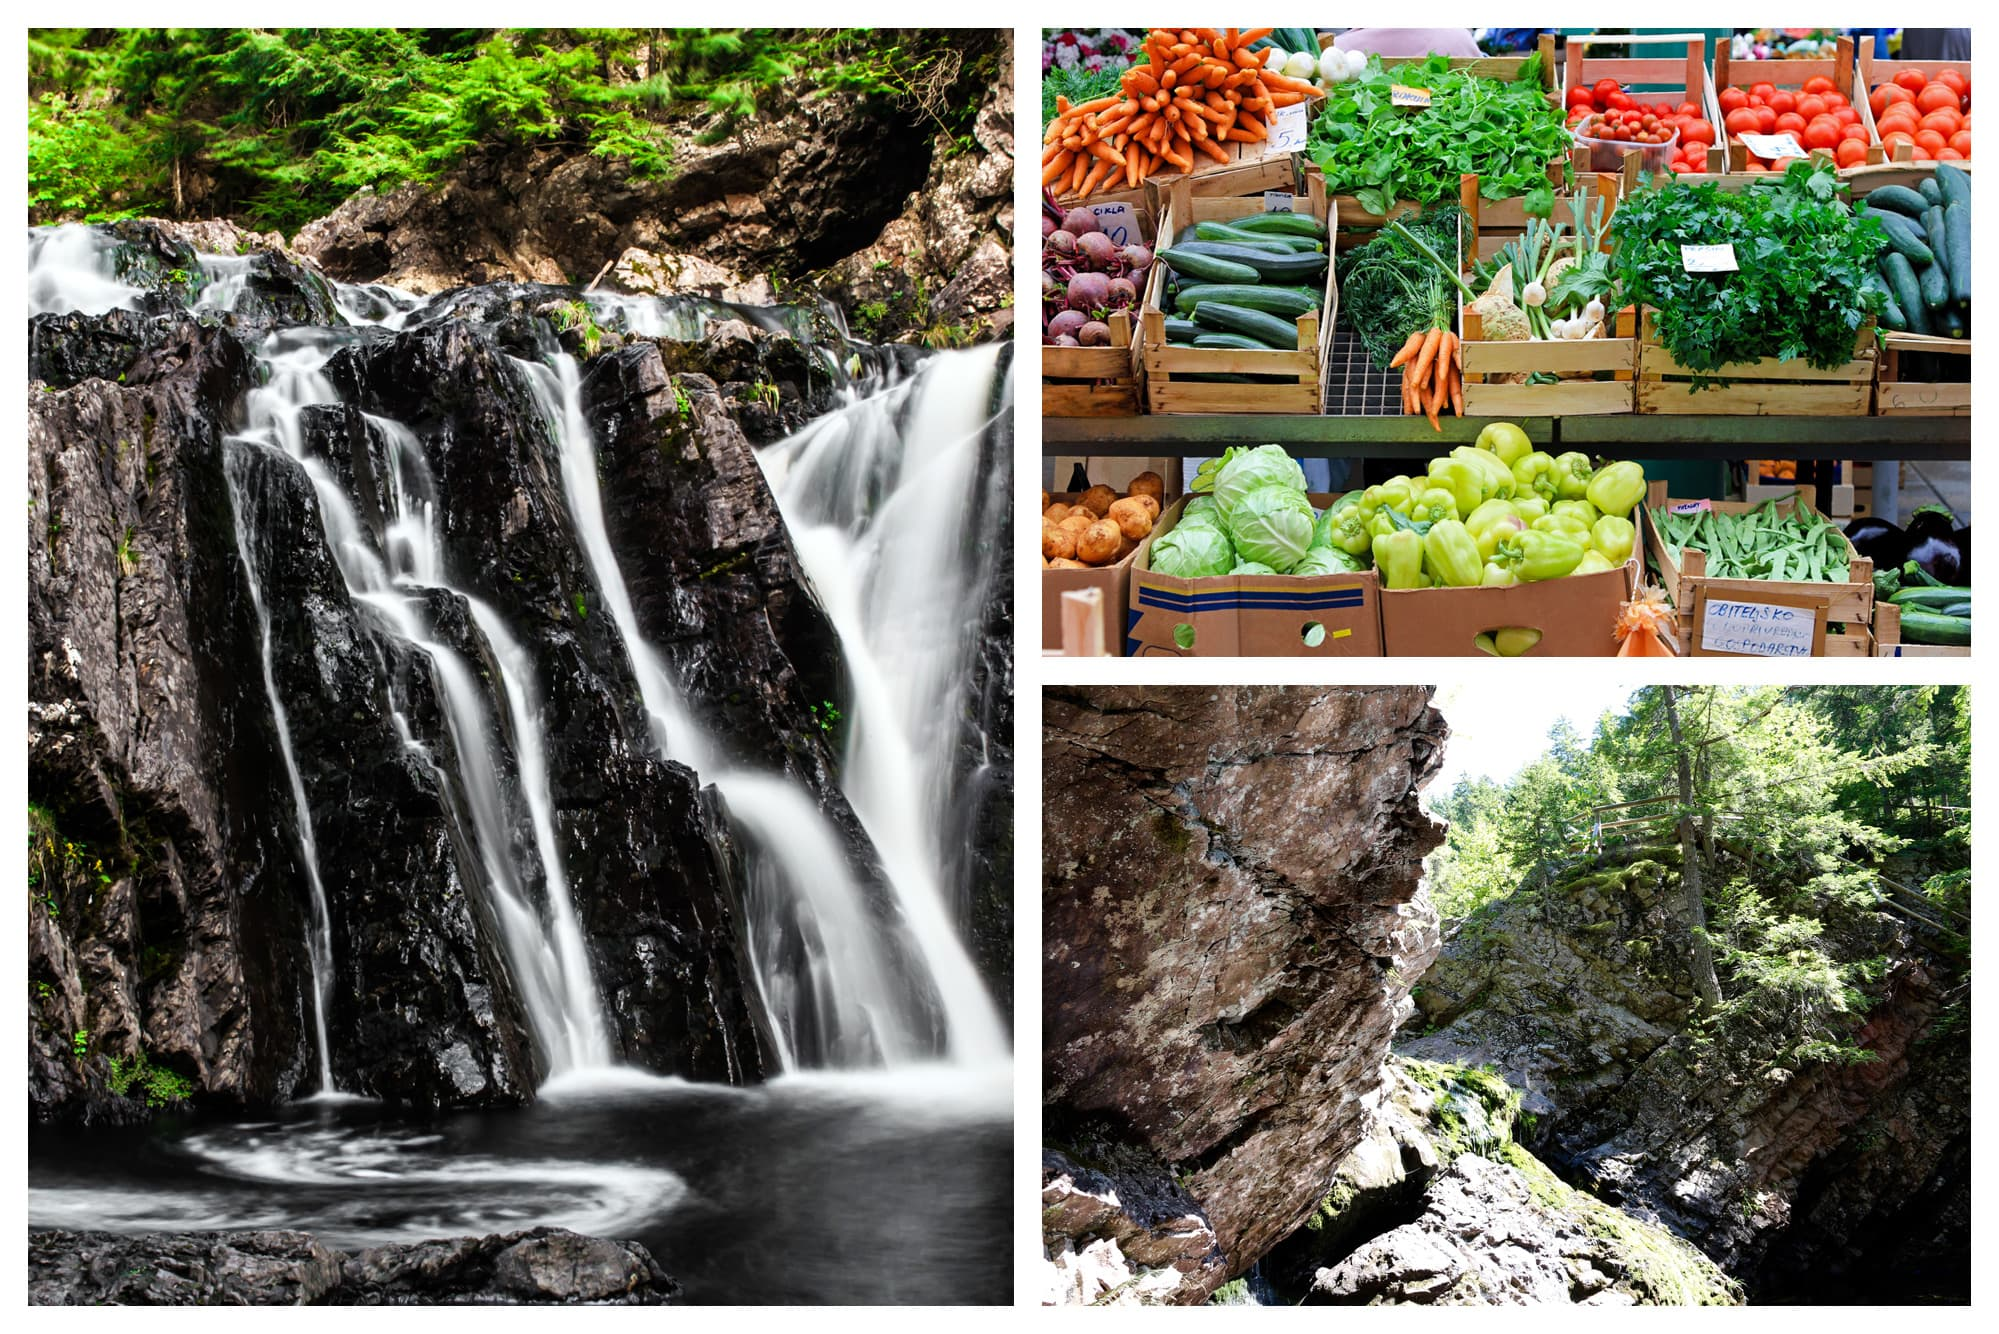 Waterfalls, farmers market, and landscape views of Truro, Nova Scotia